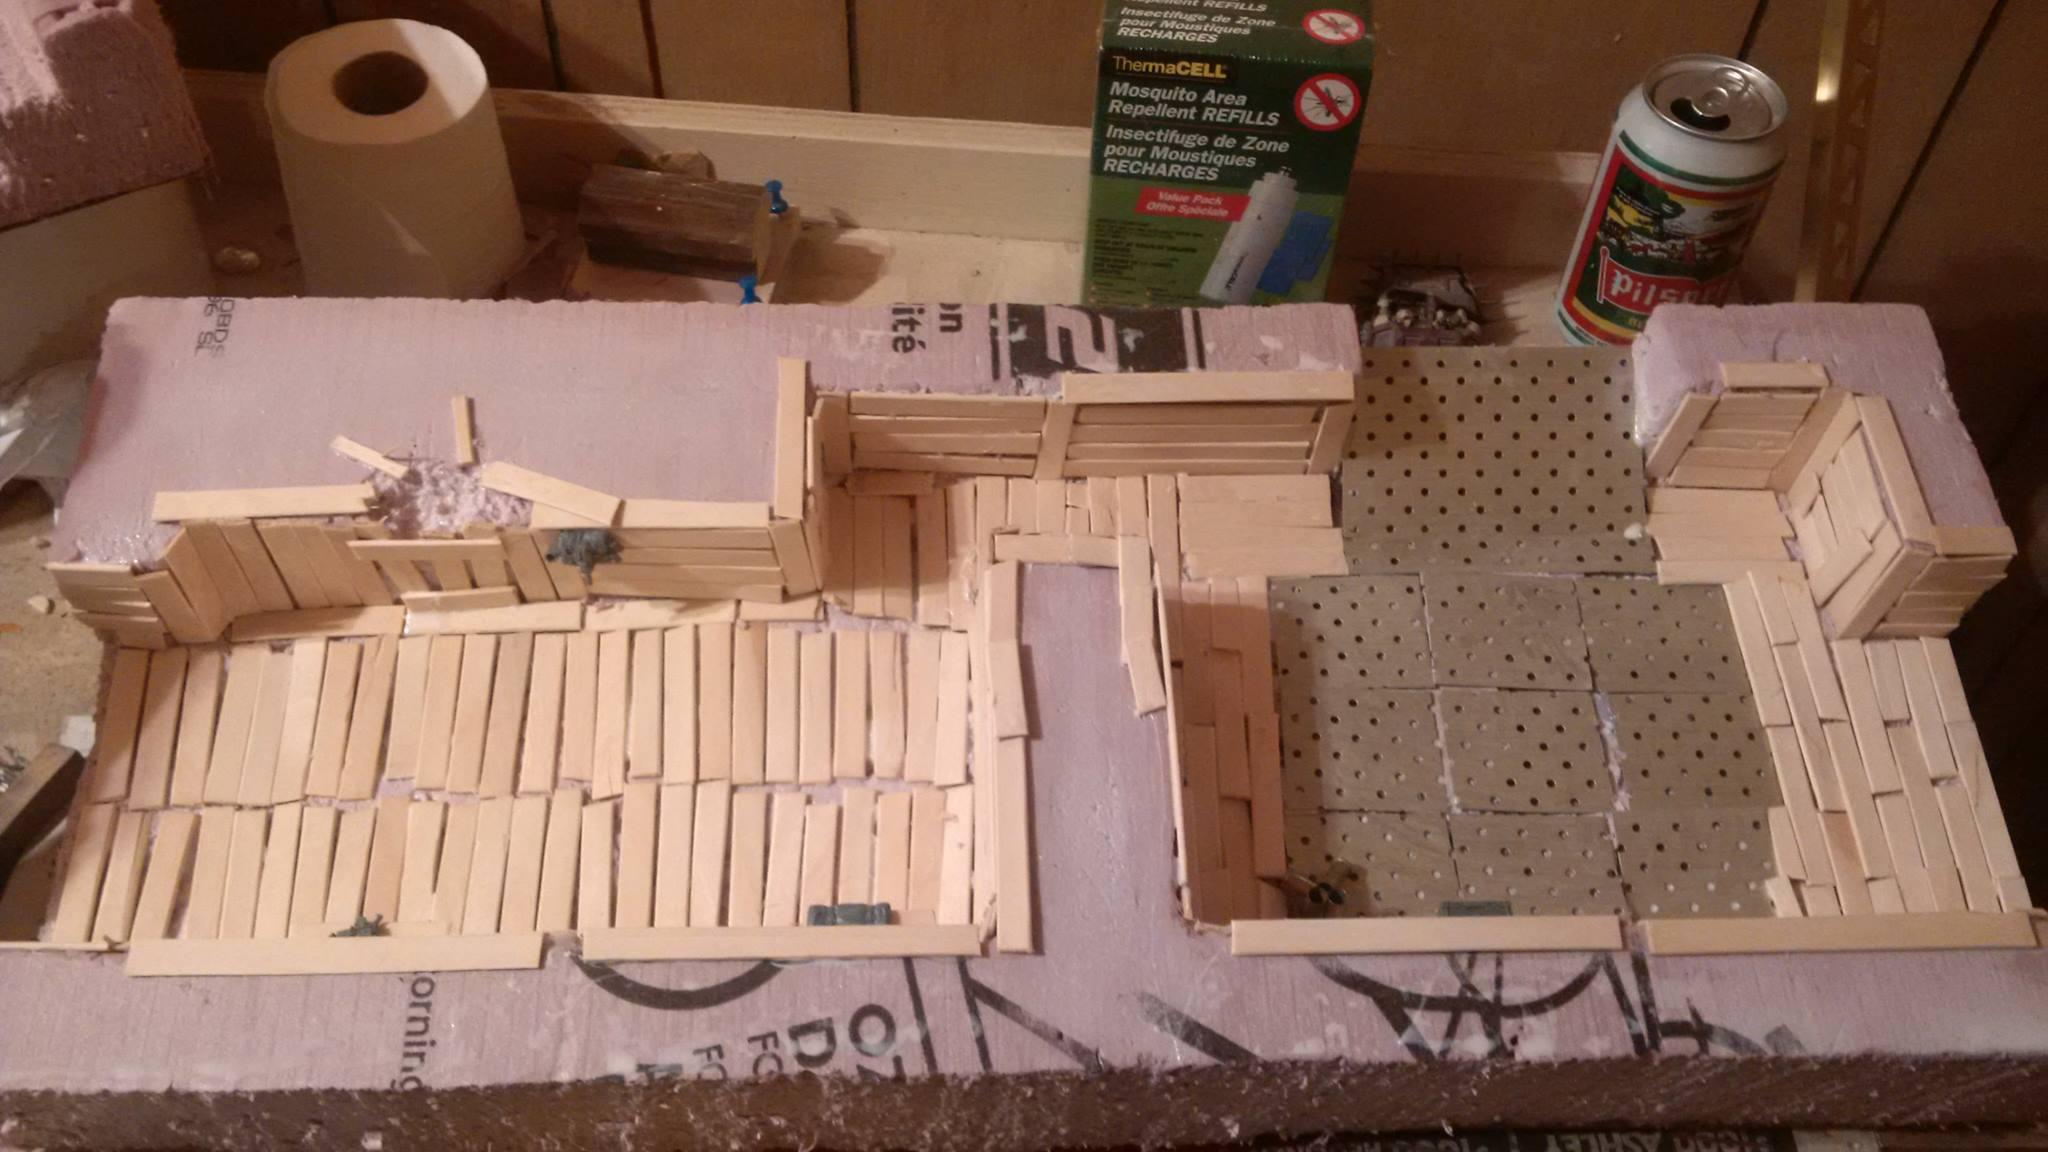 Terrain, Trench, Trenches, Work In Progress, Wwi